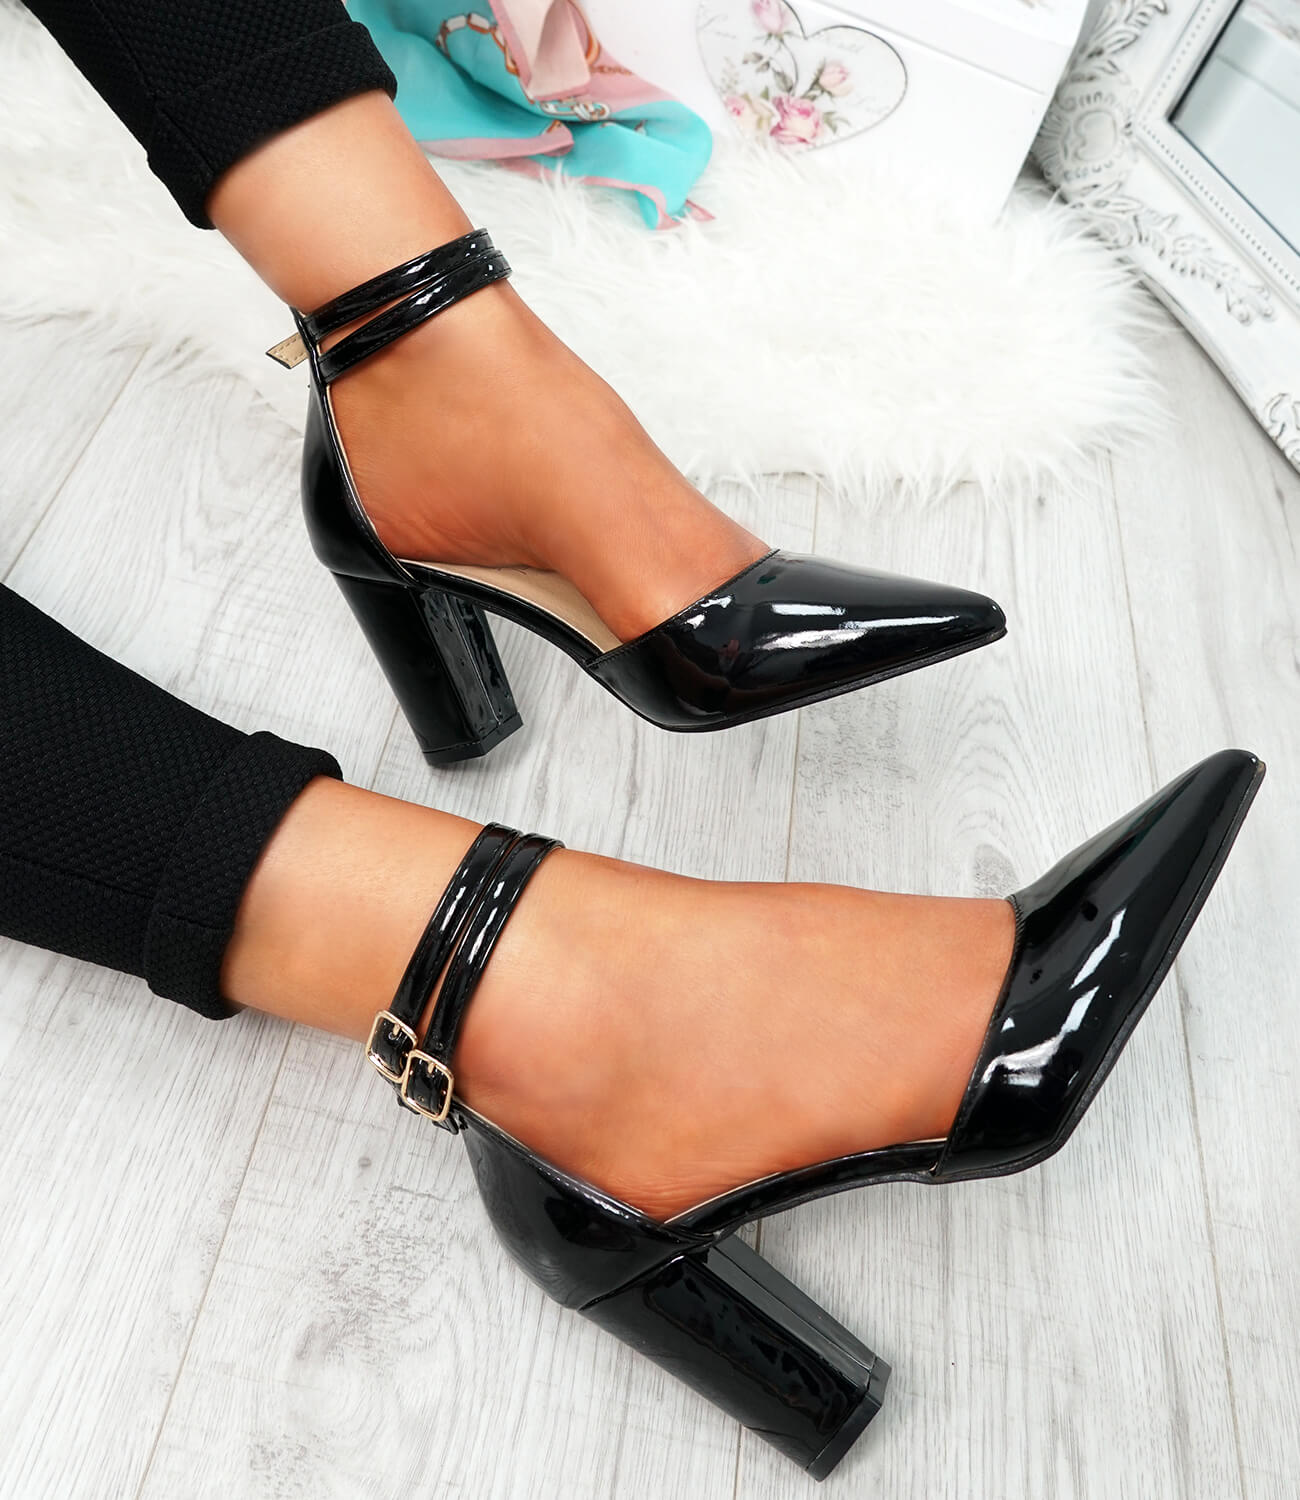 WOMENS-LADIES-ANKLE-DOUBLE-STRAP-HIGH-BLOCK-HEEL-POINTED-TOE-PARTY-SHOES-SIZE thumbnail 10